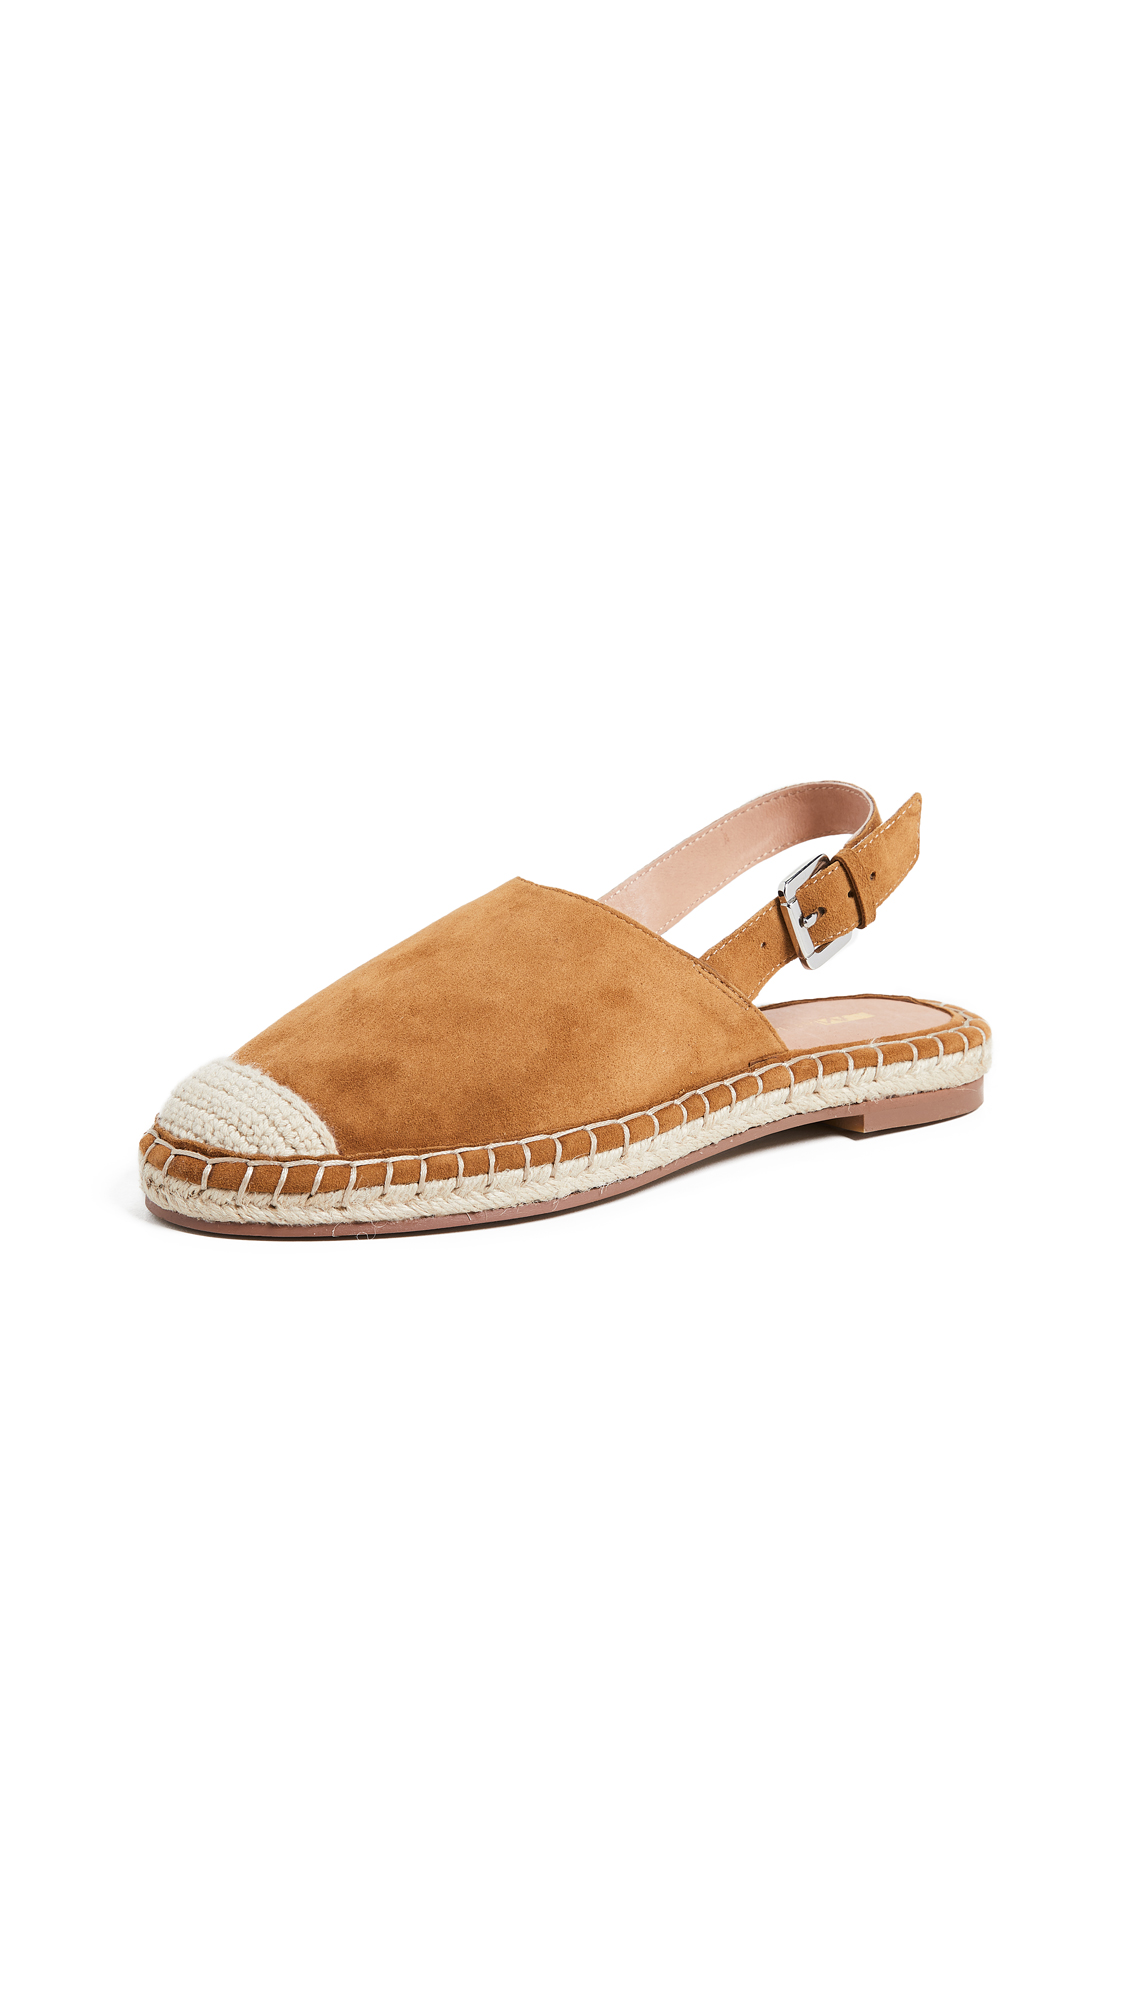 Photo of Matiko Spadrilla Slingback Espadrilles - buy Matiko shoes